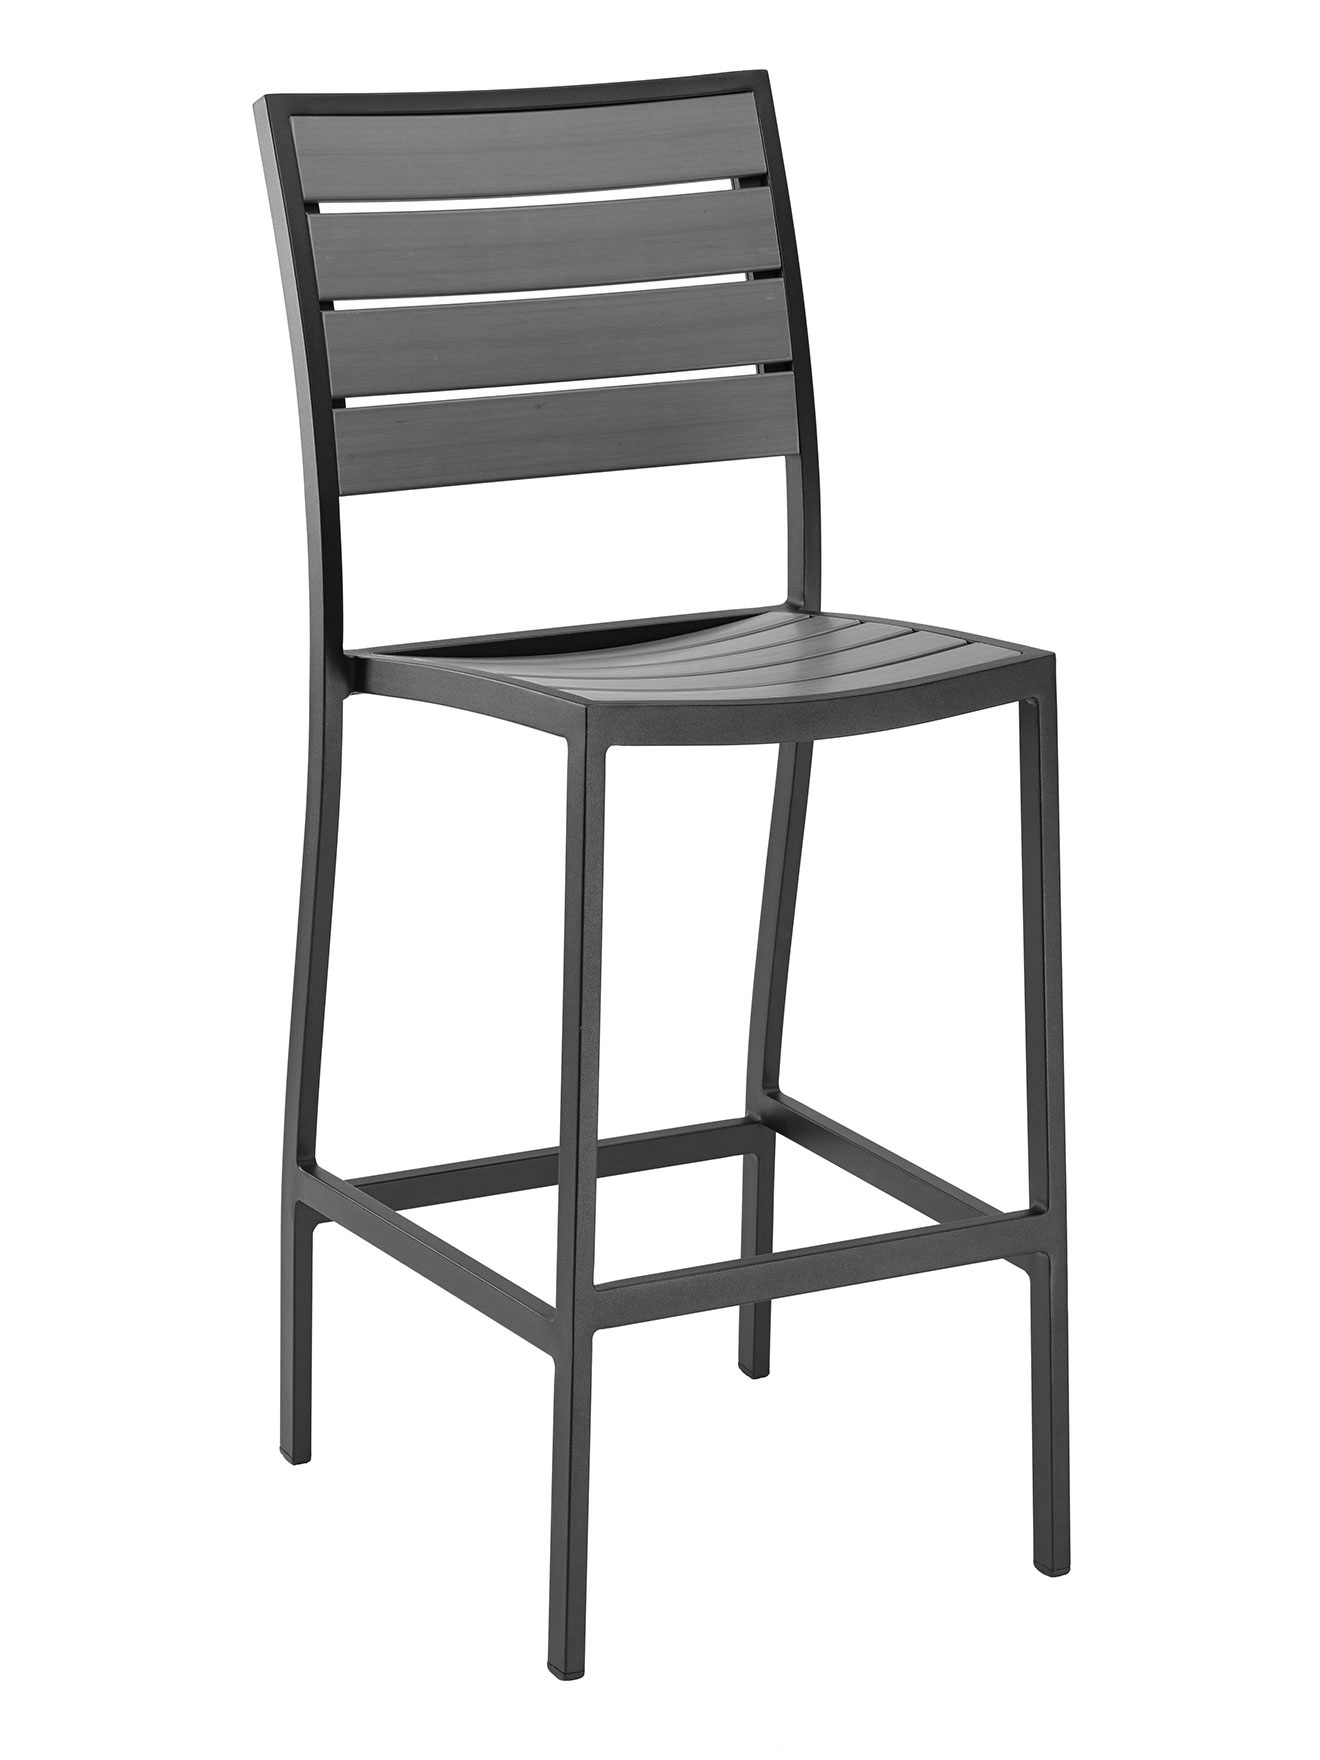 Teak Aluminum Square Frame ARMLESS Bar Stool